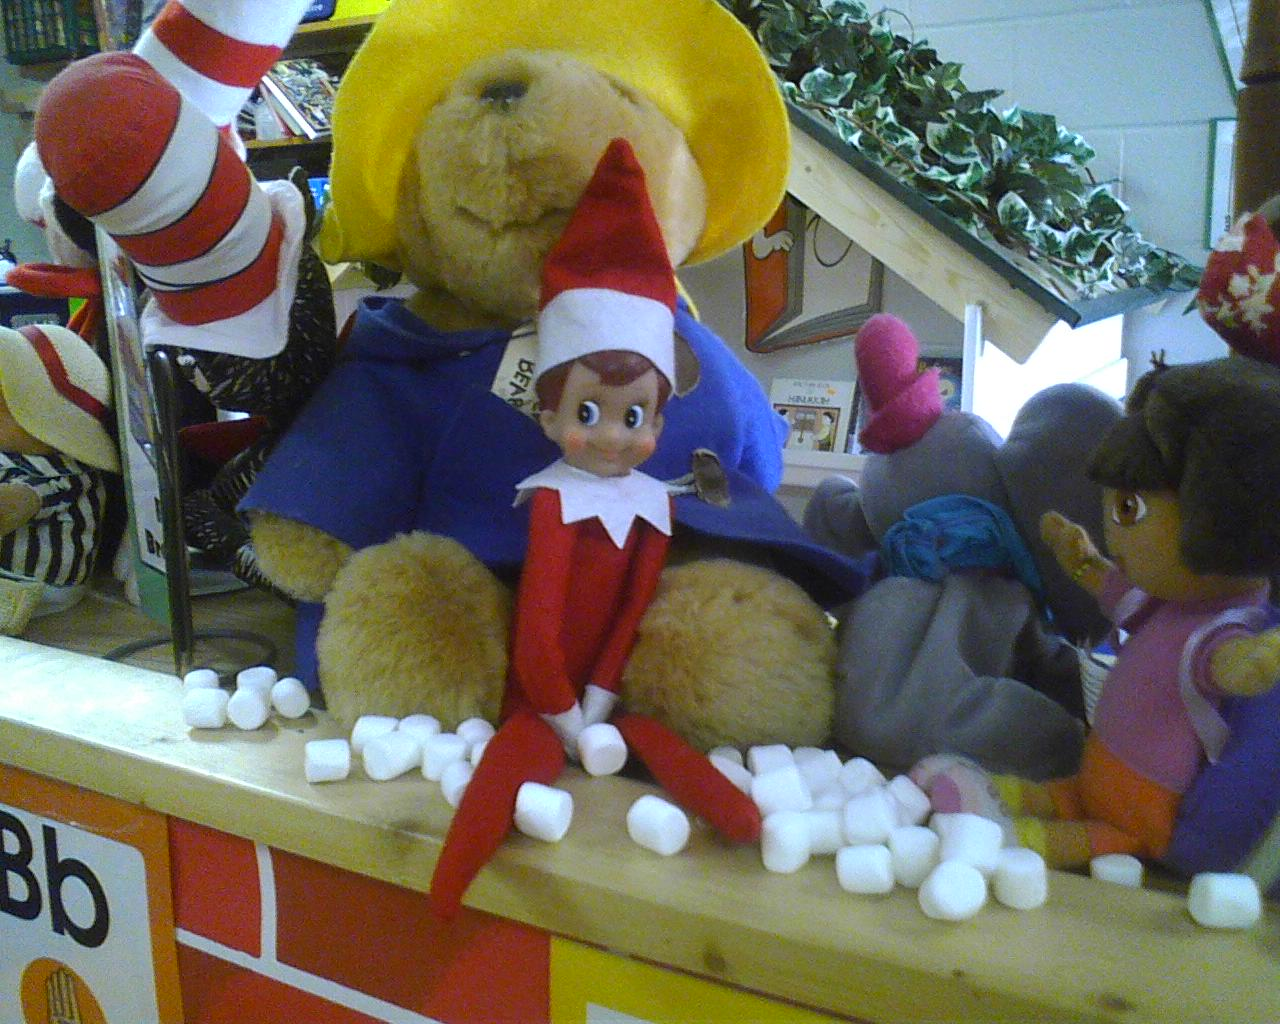 Mrs Lirette39s Learning Detectives Elf in the Classroom